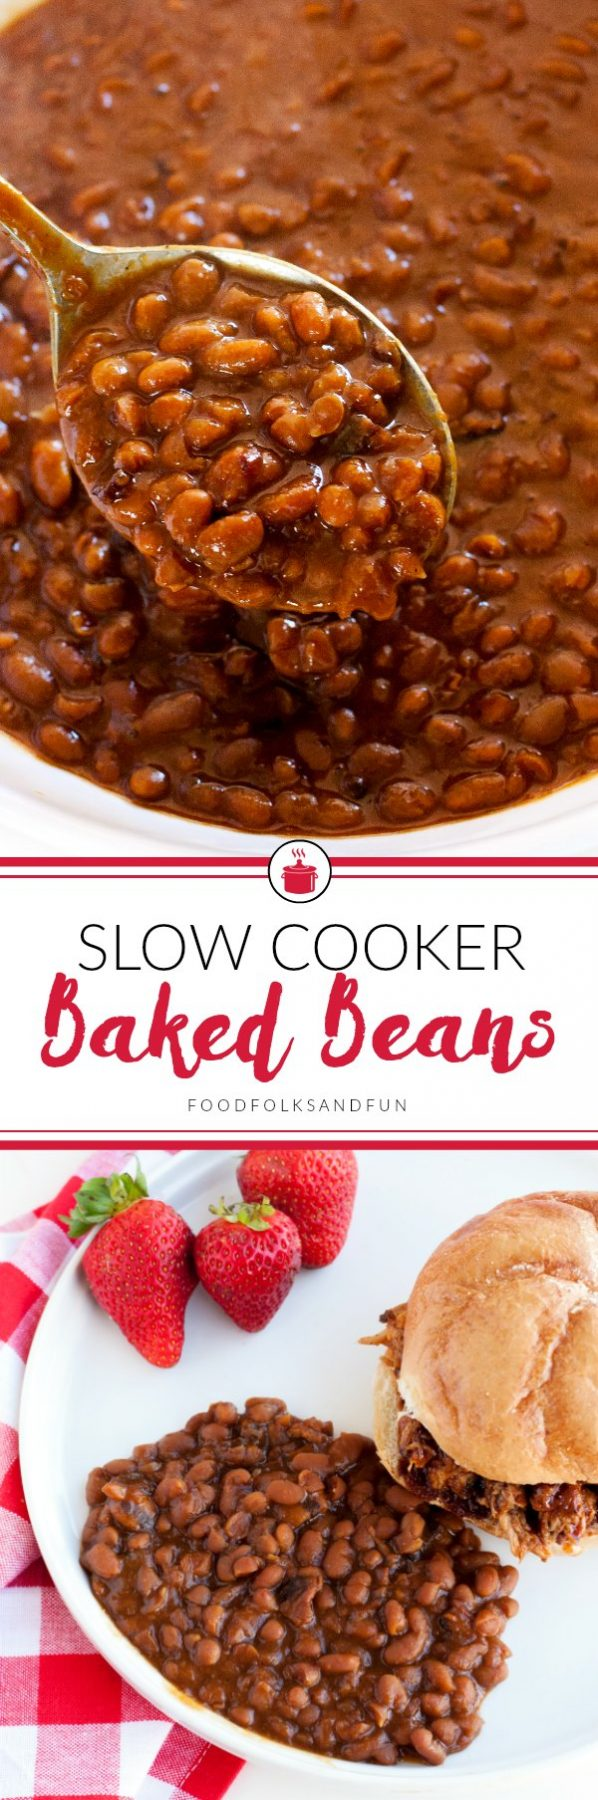 This Slow Cooker Boston Baked Beans recipe is everything baked beans ...